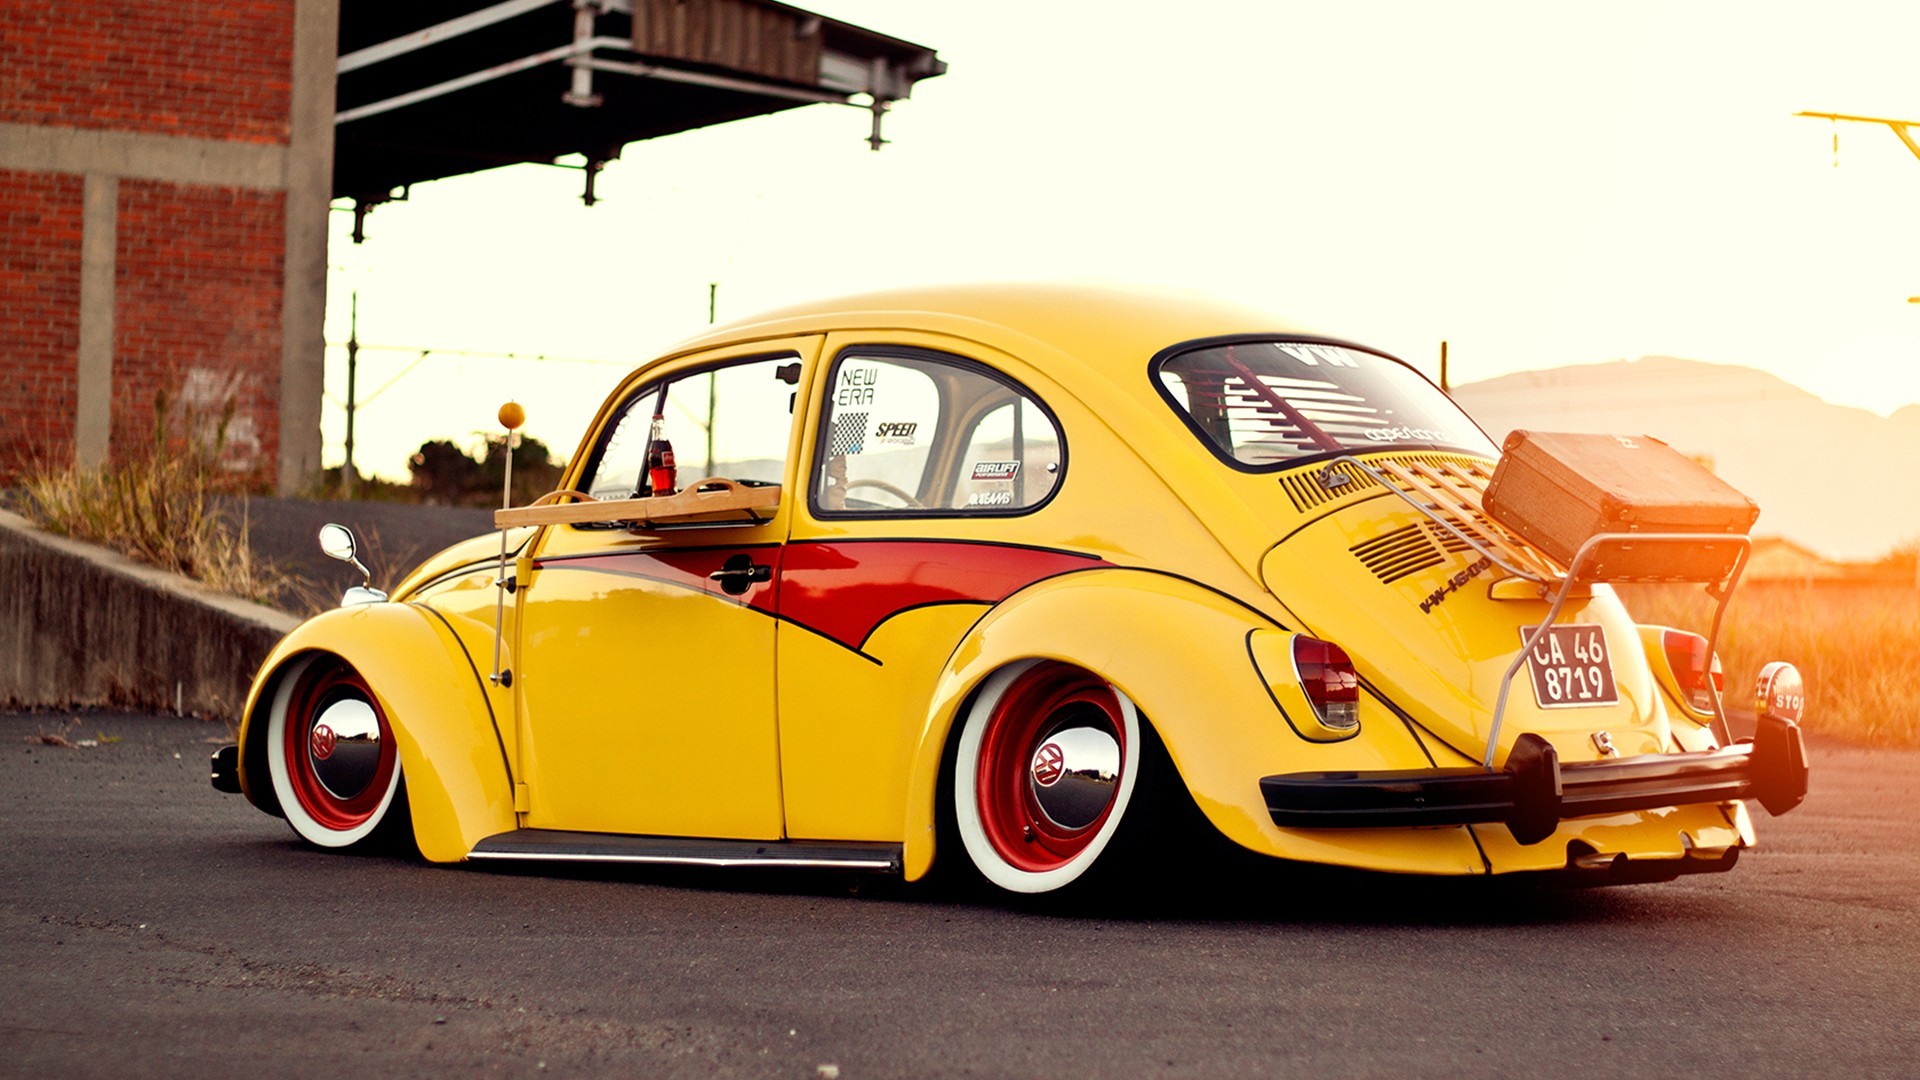 Volkswagen Beetle HD Wallpapers Backgrounds 1920x1080